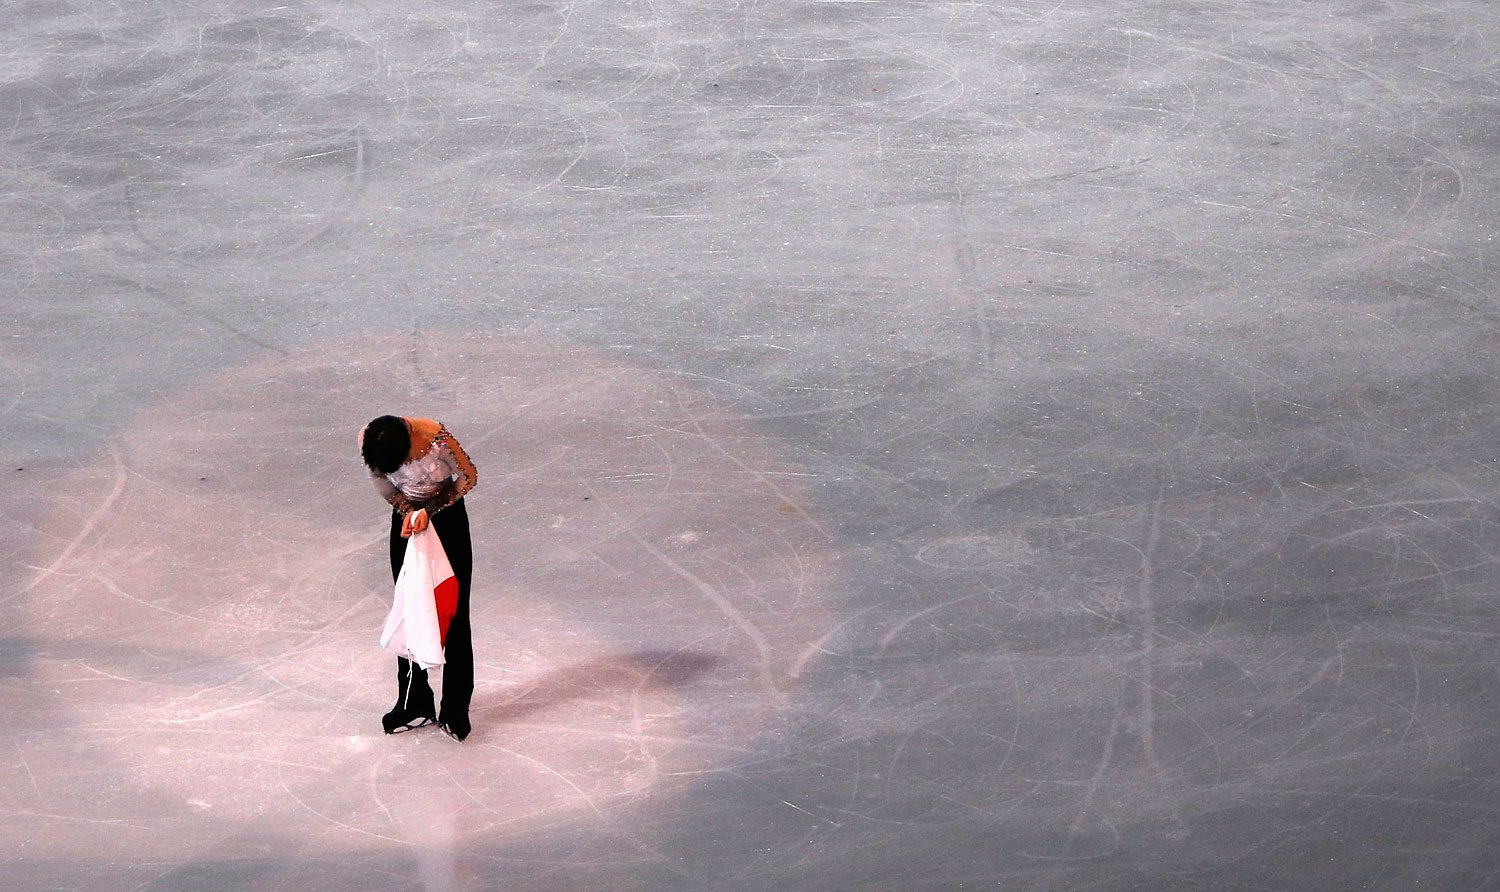 First-placed Japan's Yuzuru Hanyu bows after the flower ceremony for the figure skating men's free skating program.